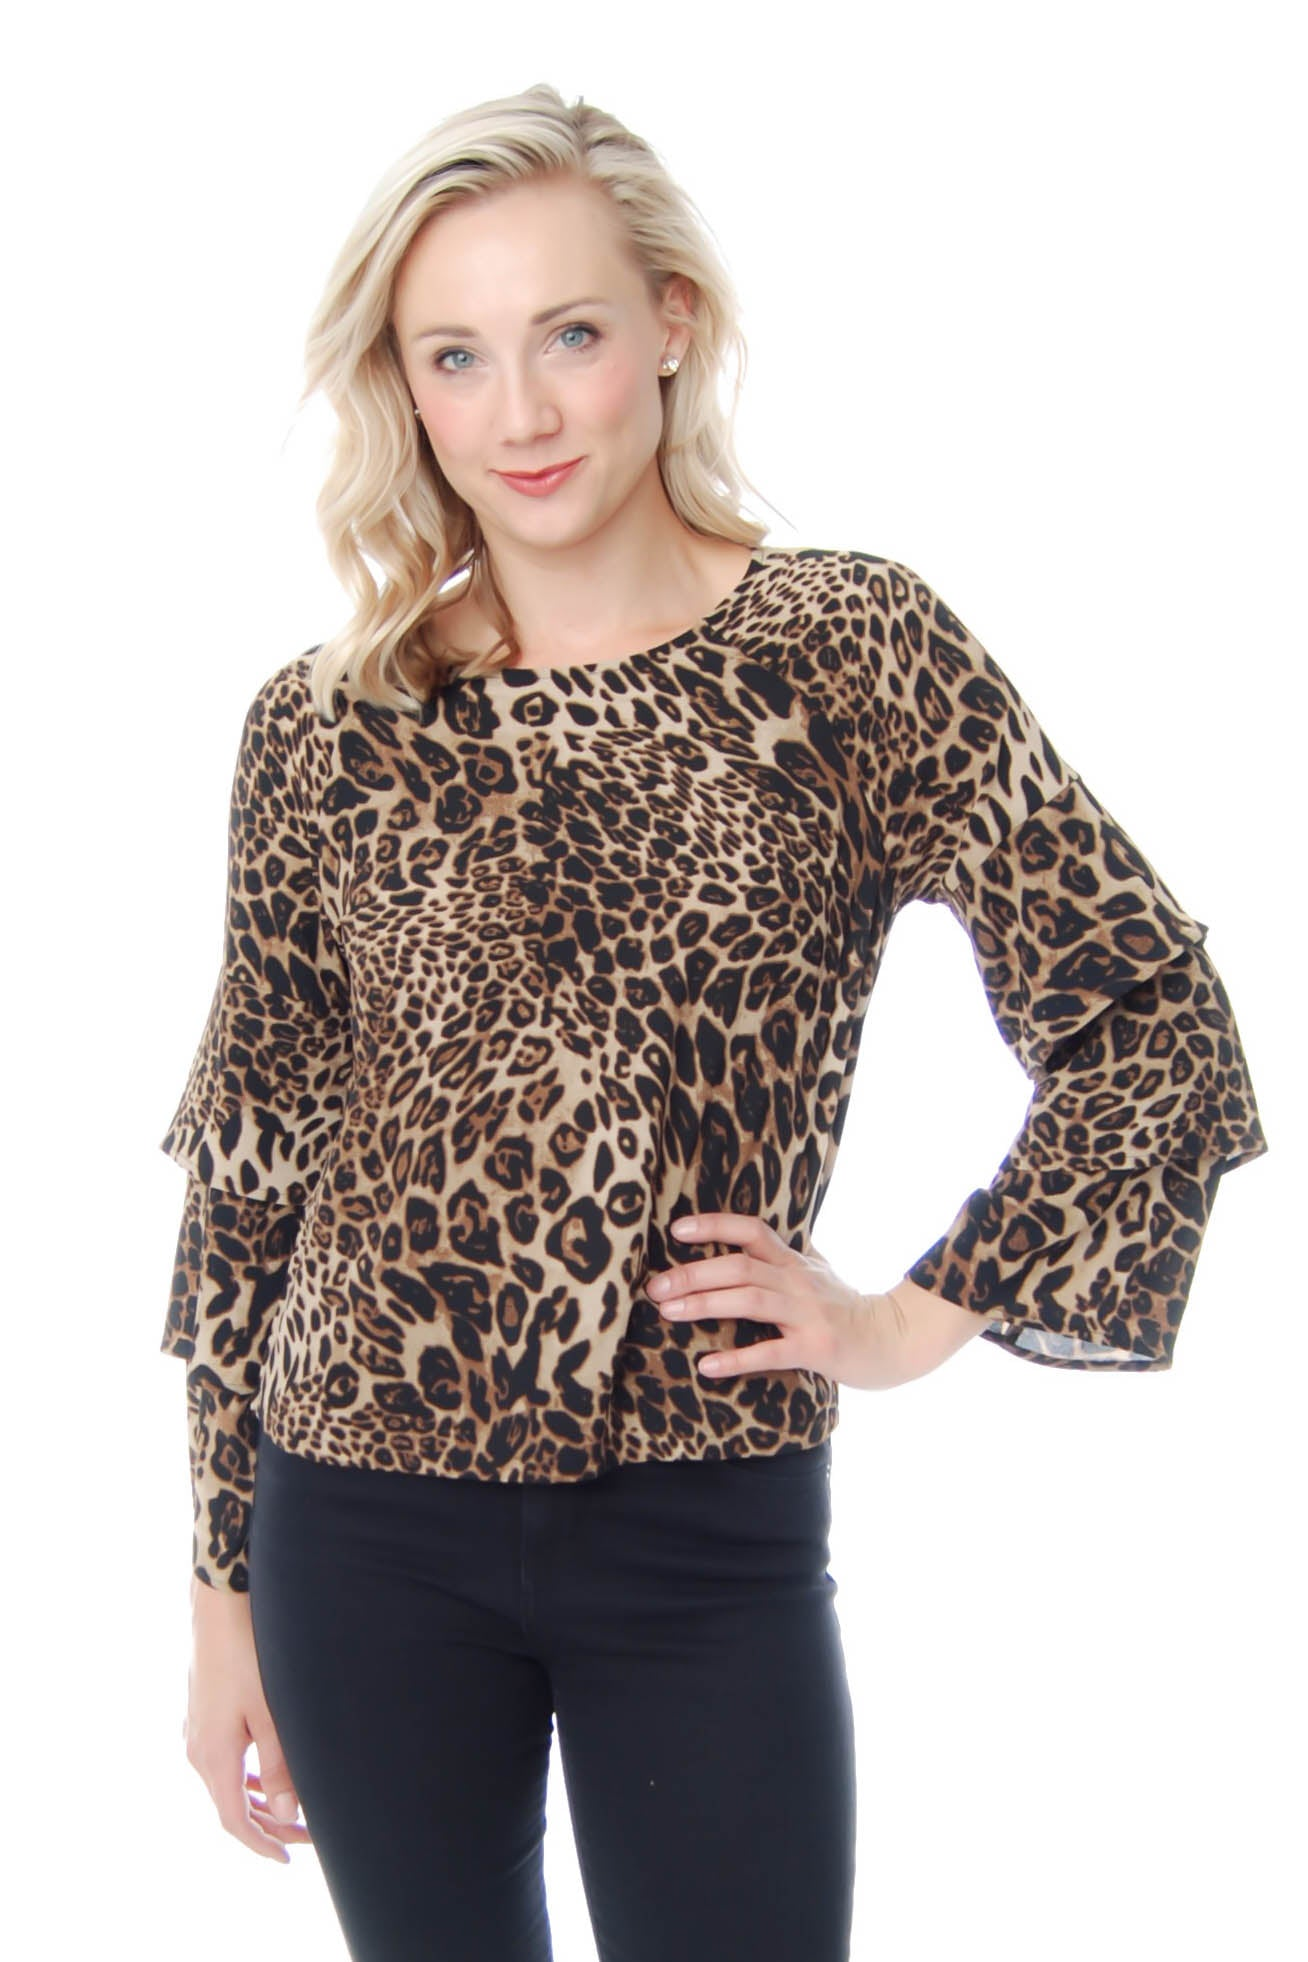 Leopard Top with Ruffled SLeeves